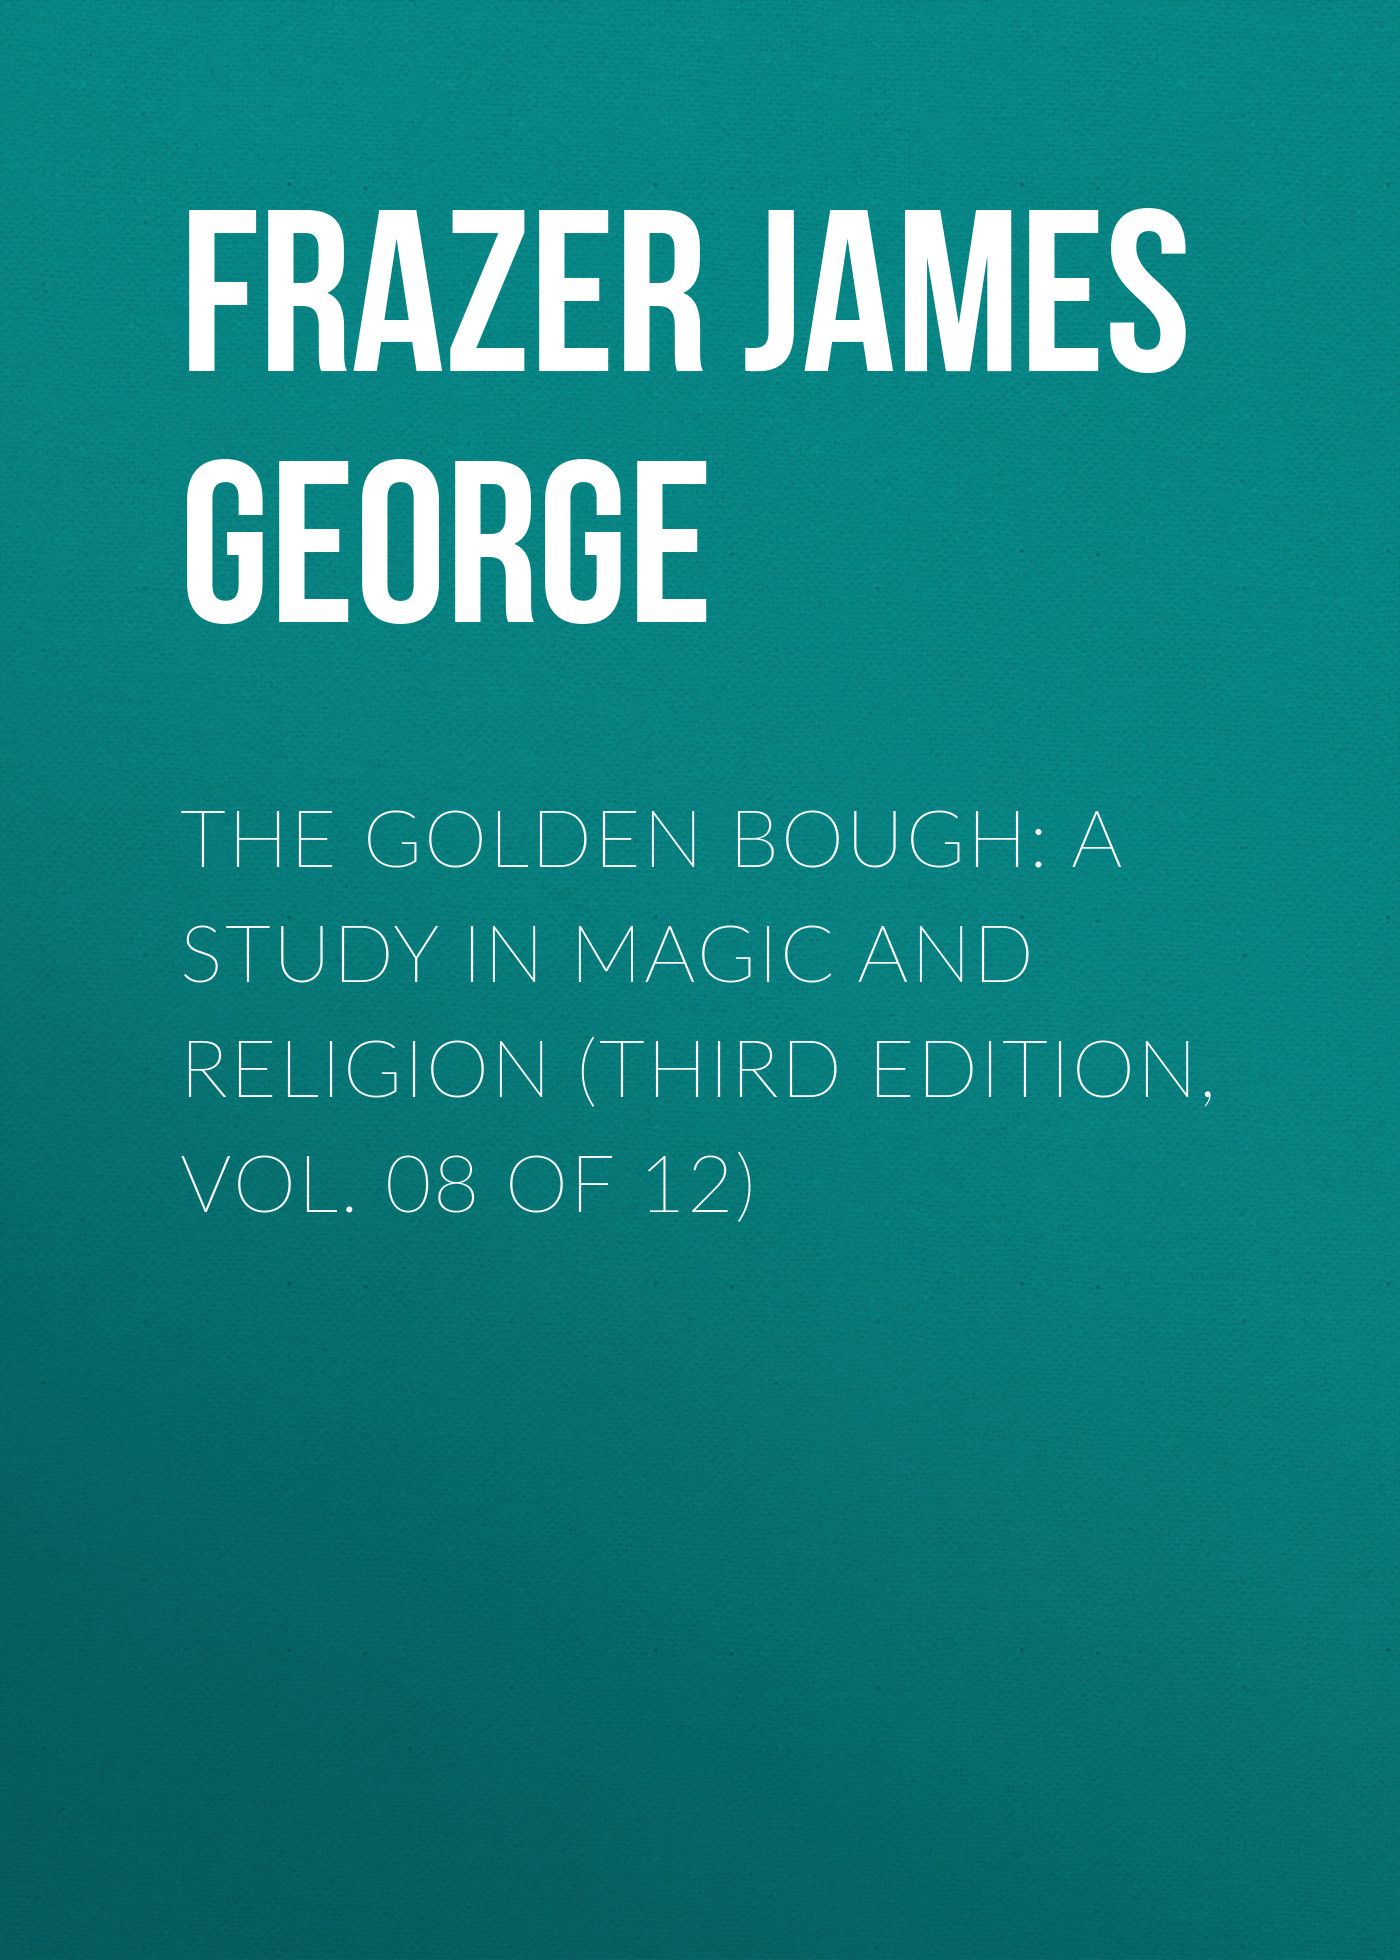 Frazer James George The Golden Bough: A Study in Magic and Religion (Third Edition, Vol. 08 of 12)